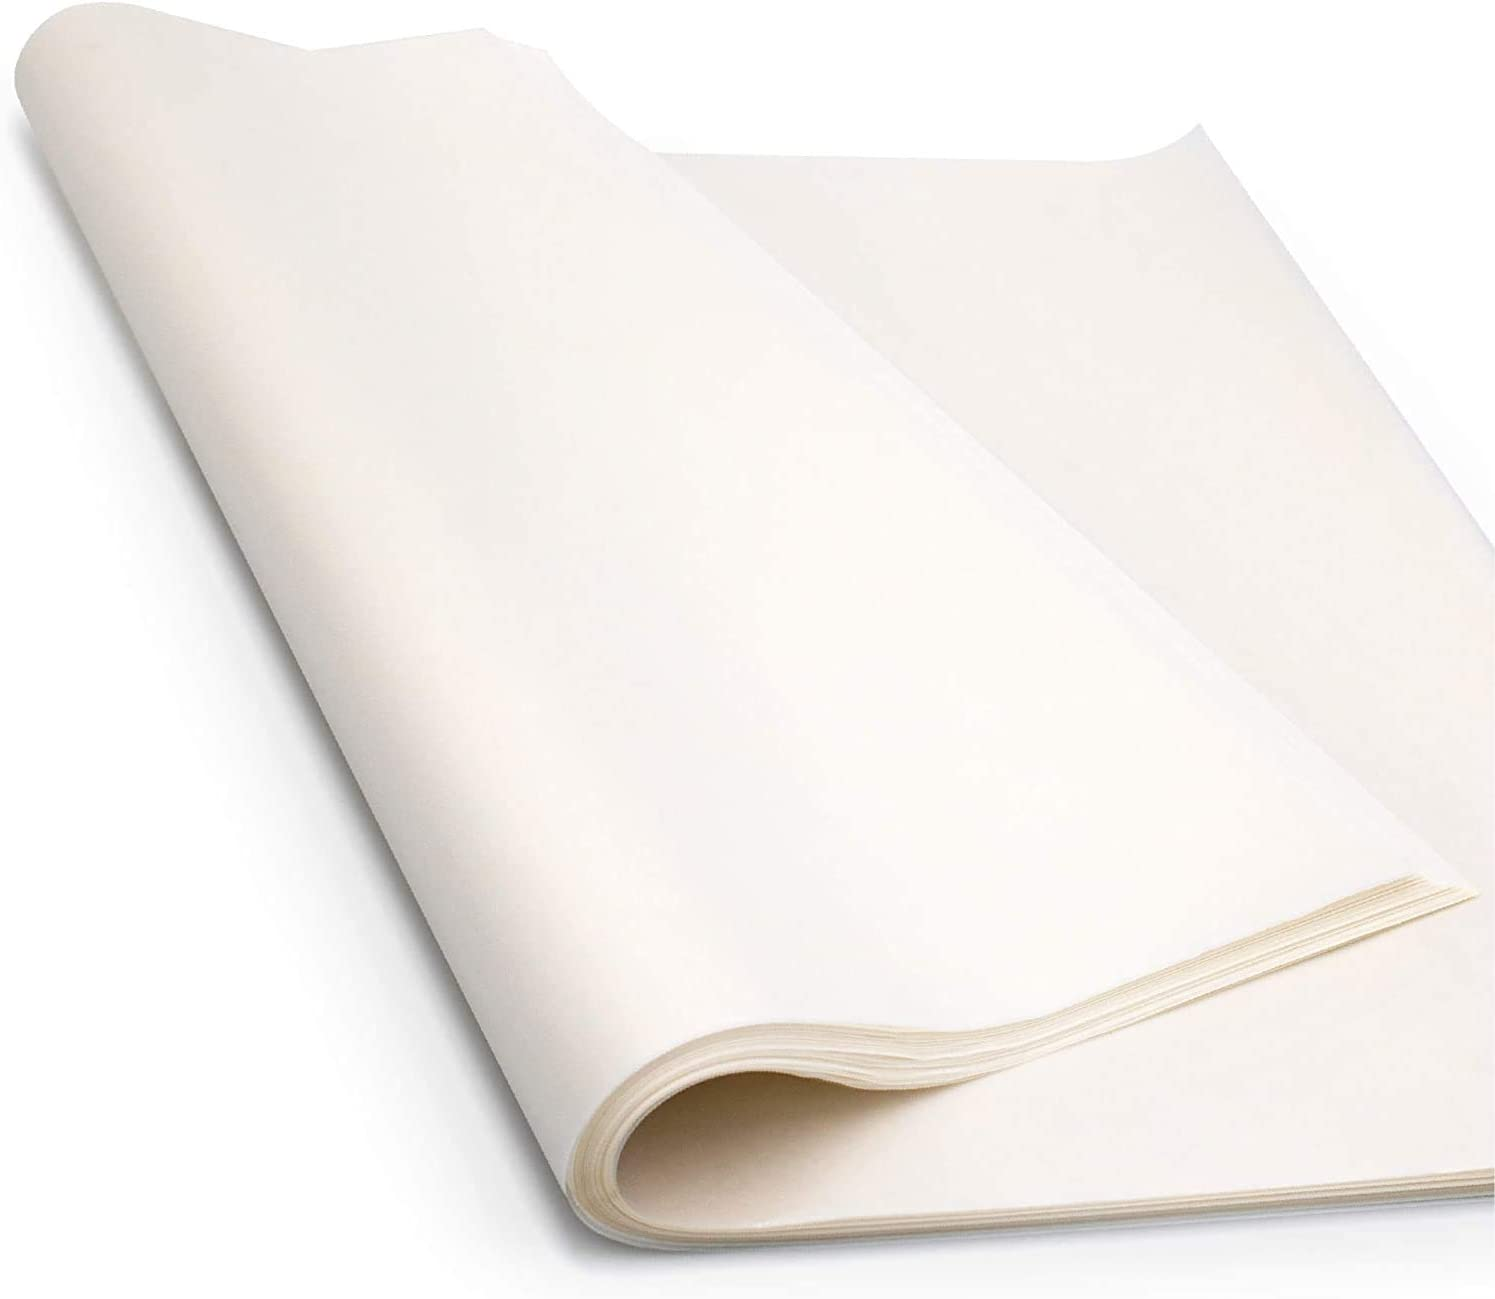 Glassine Paper Sheets (24 inches x 36 inches - 500 Sheets), Acid-Free with a Neutral PH for Protecting Documents, Drawing & Photographs by Paper Pros